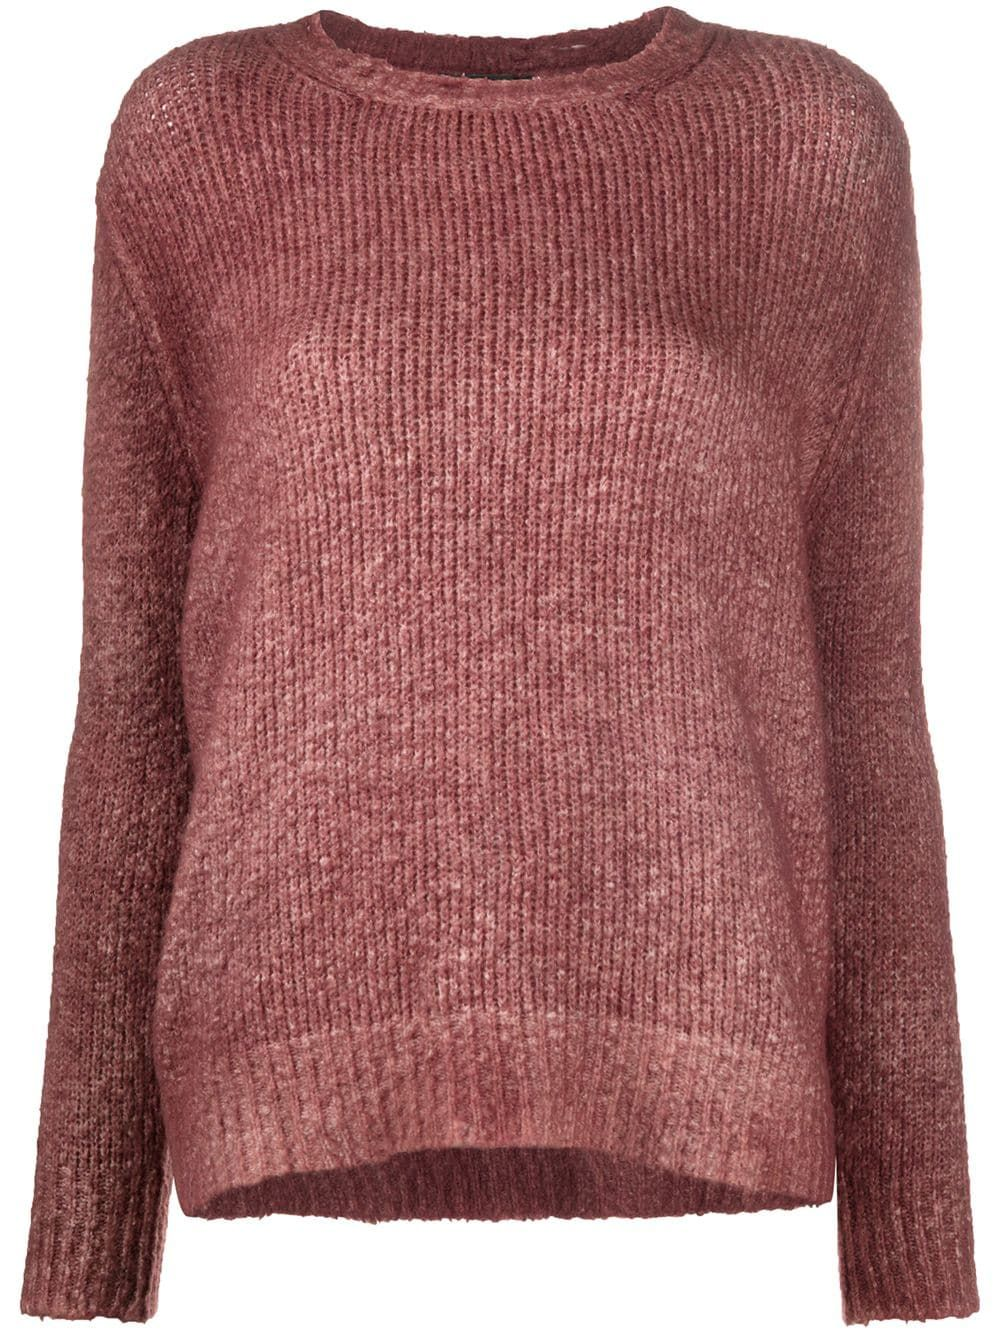 Avant Toi chunky knit jumper - Green